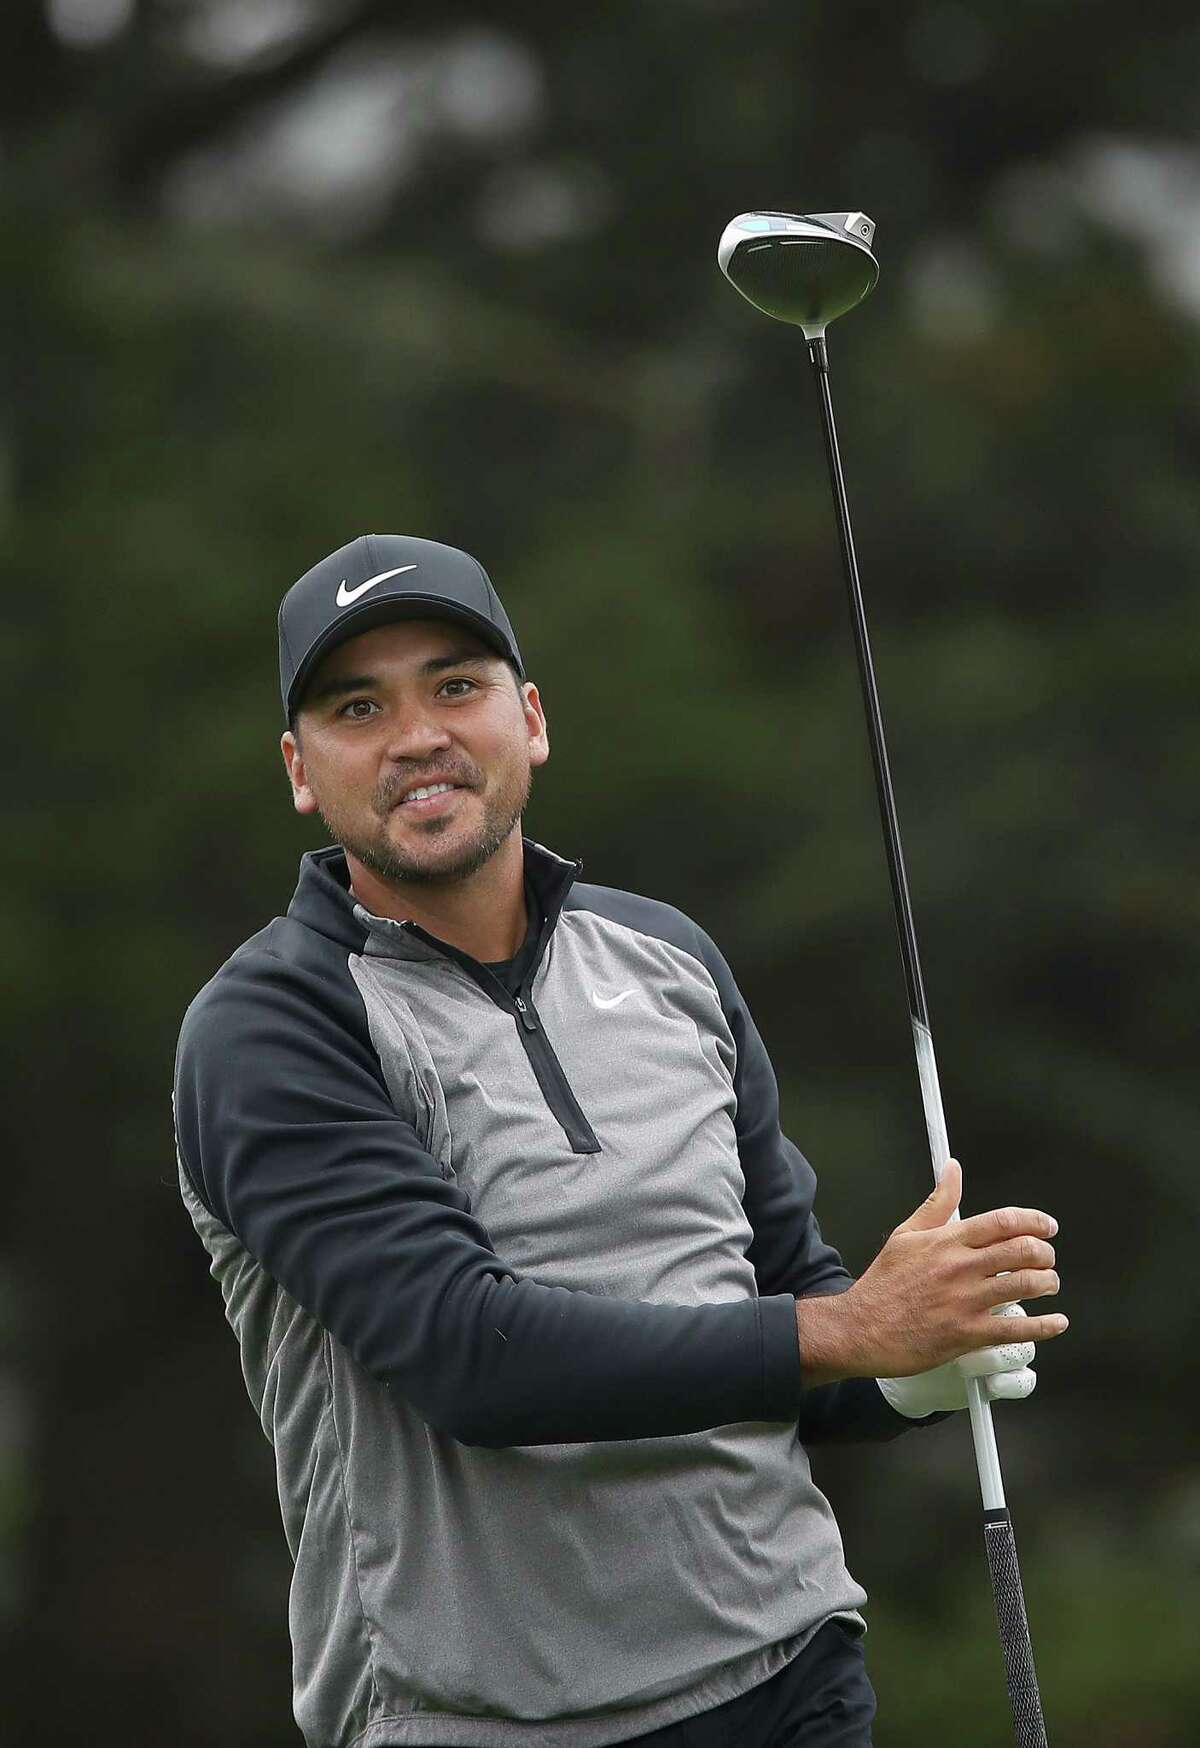 SAN FRANCISCO, CALIFORNIA - AUGUST 04: Jason Day of Australia plays his shot from the 14th tee during a practice round prior to the 2020 PGA Championship at TPC Harding Park on August 04, 2020 in San Francisco, California. (Photo by Sean M. Haffey/Getty Images)